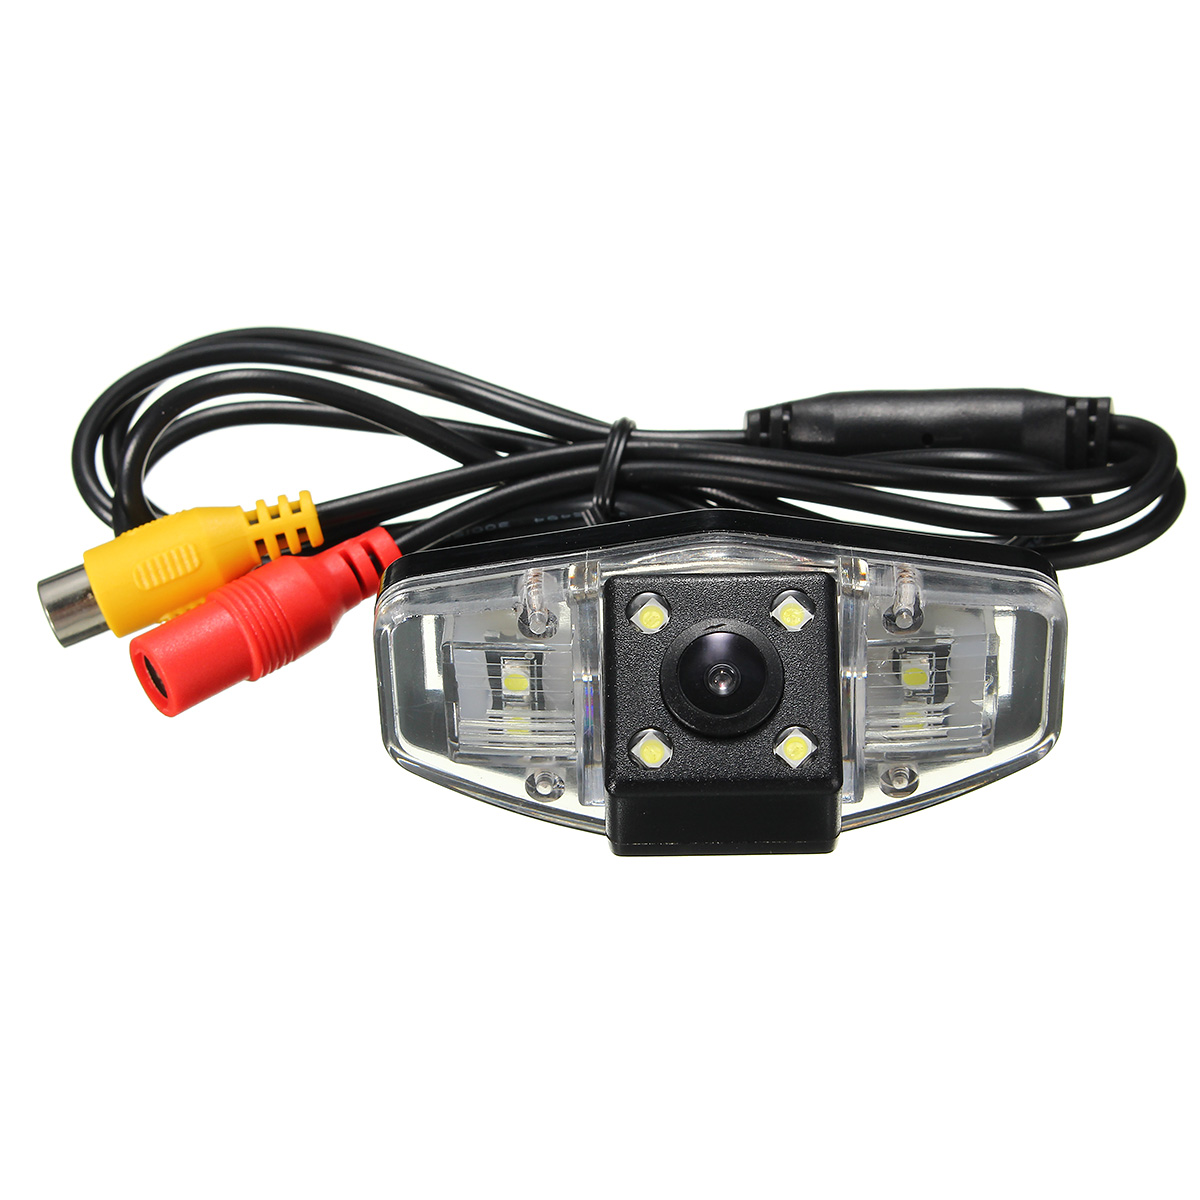 Rear View Parking Backup Camera For Honda Accord Pilot